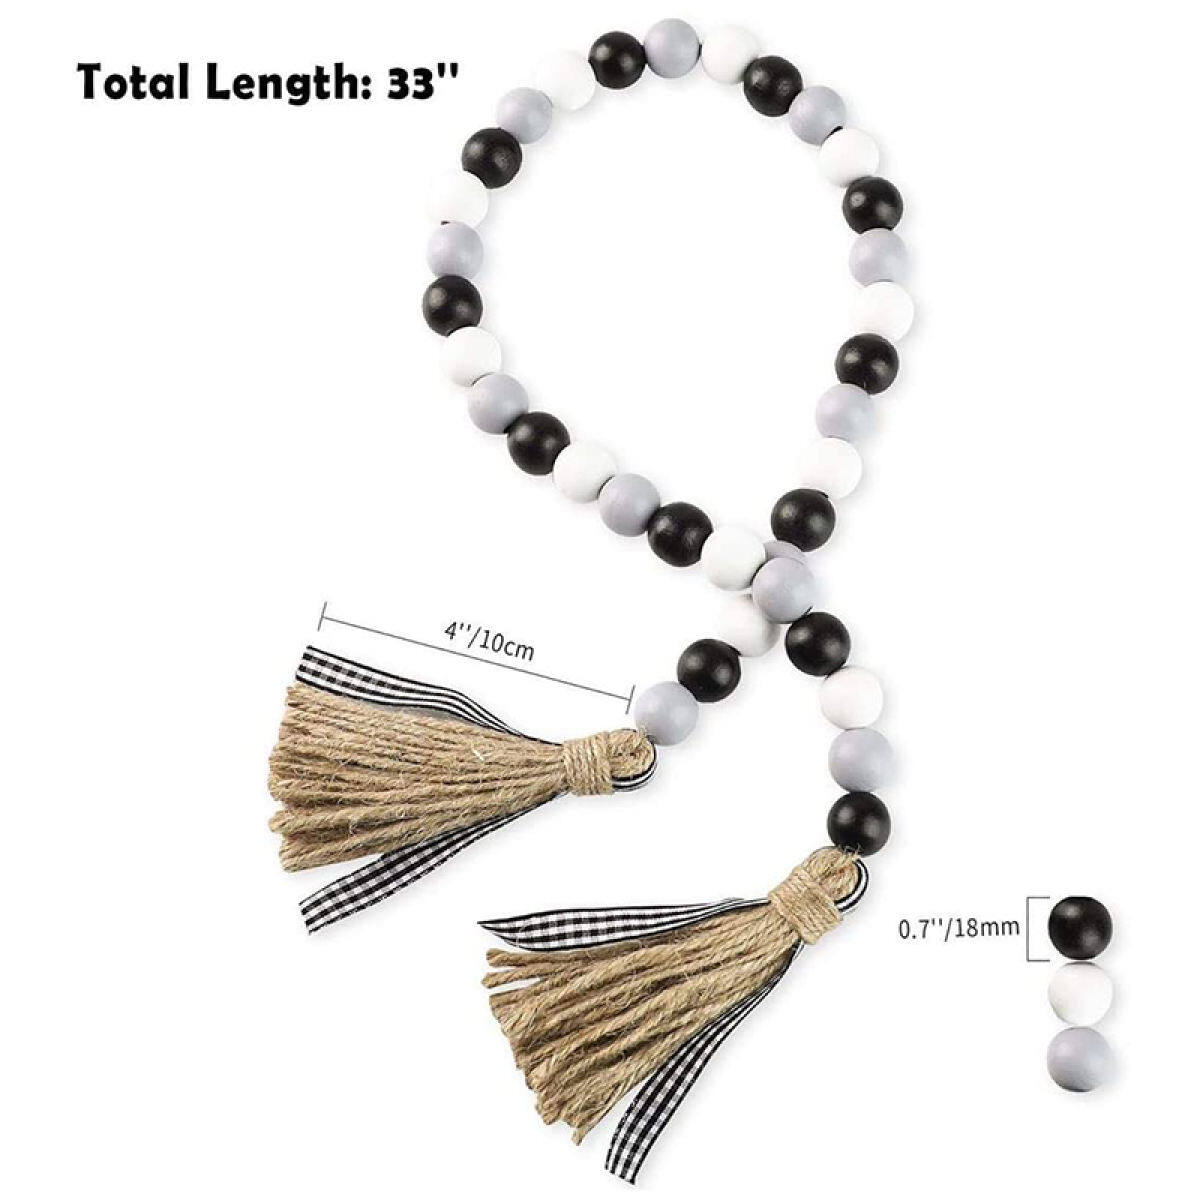 Wood Bead Garland With Tassels Tiered Tray Christmas Decorations Black White And Gray Wooden Bead With Jute Rope Lazada